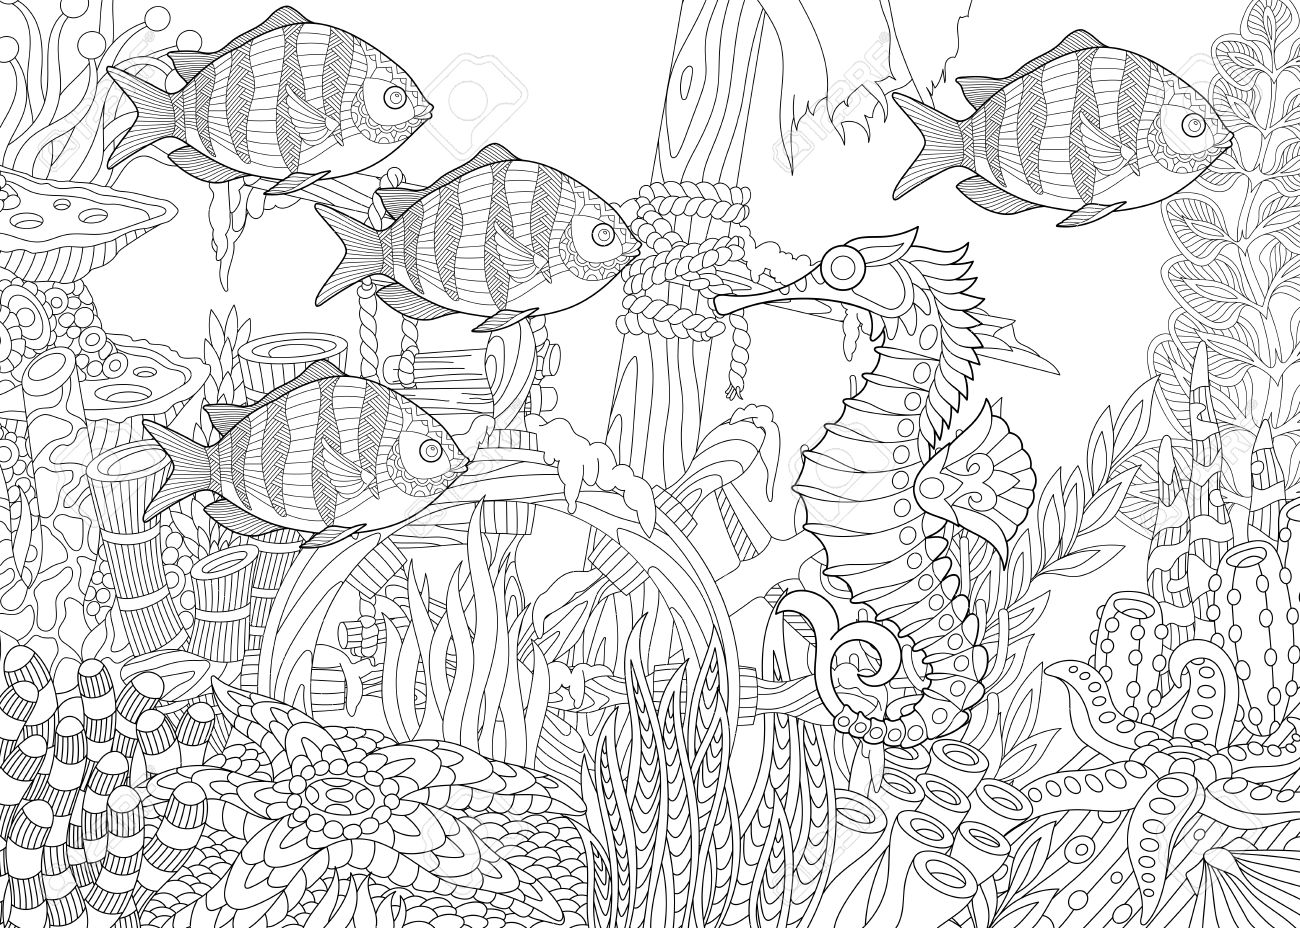 1300x928 Stylized Composition Of Tropical Fish, Seahorse, Underwater